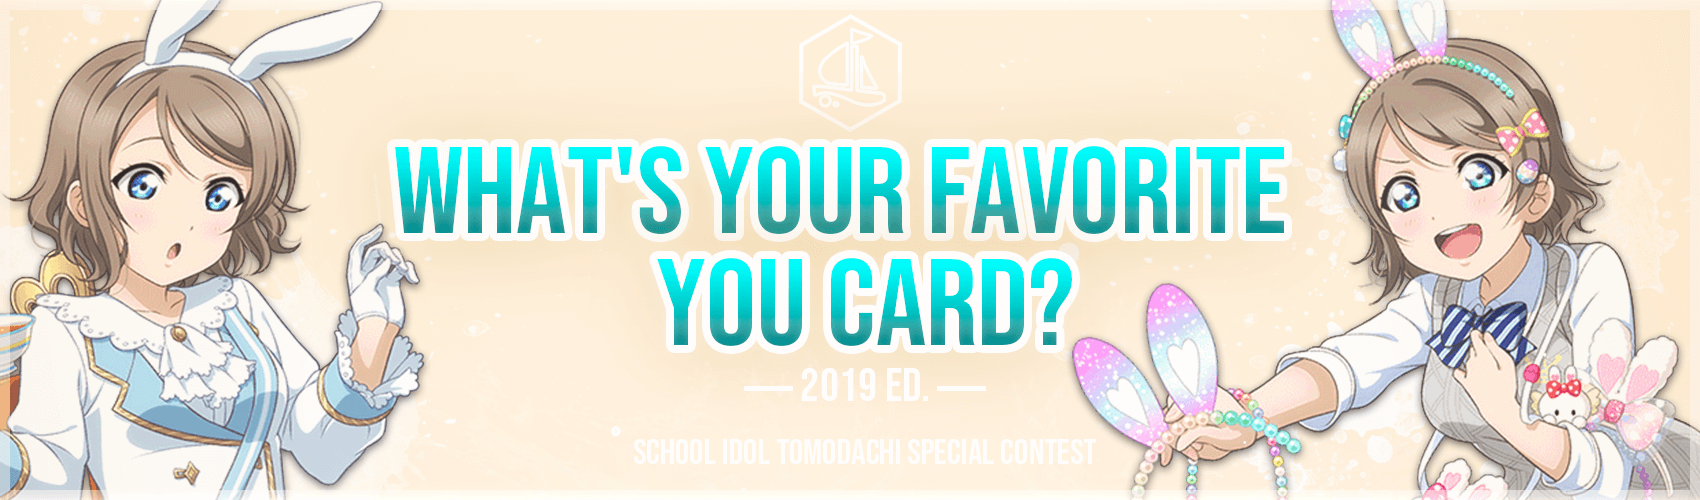 What's your favorite You card? 2019 ed.